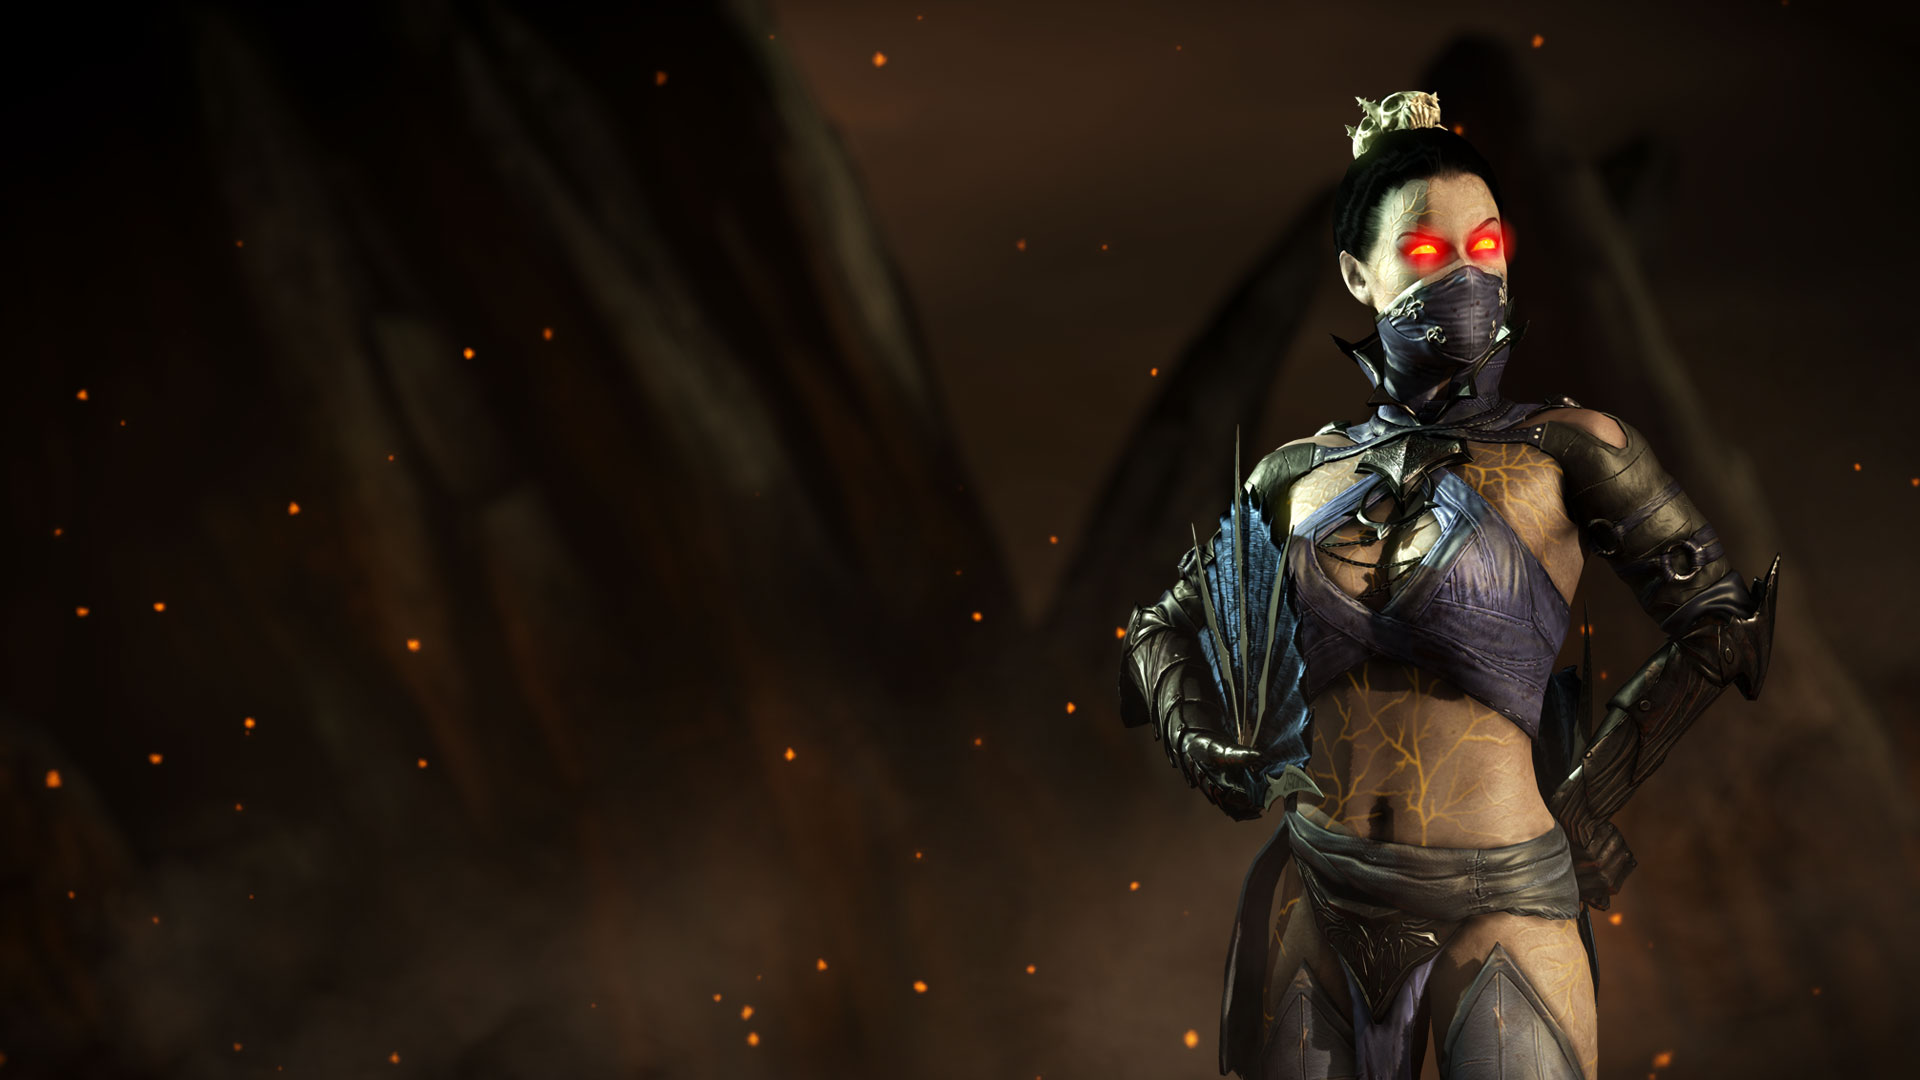 Hd Photos For Mobile Wallpaper Mkwarehouse Mortal Kombat X Kitana